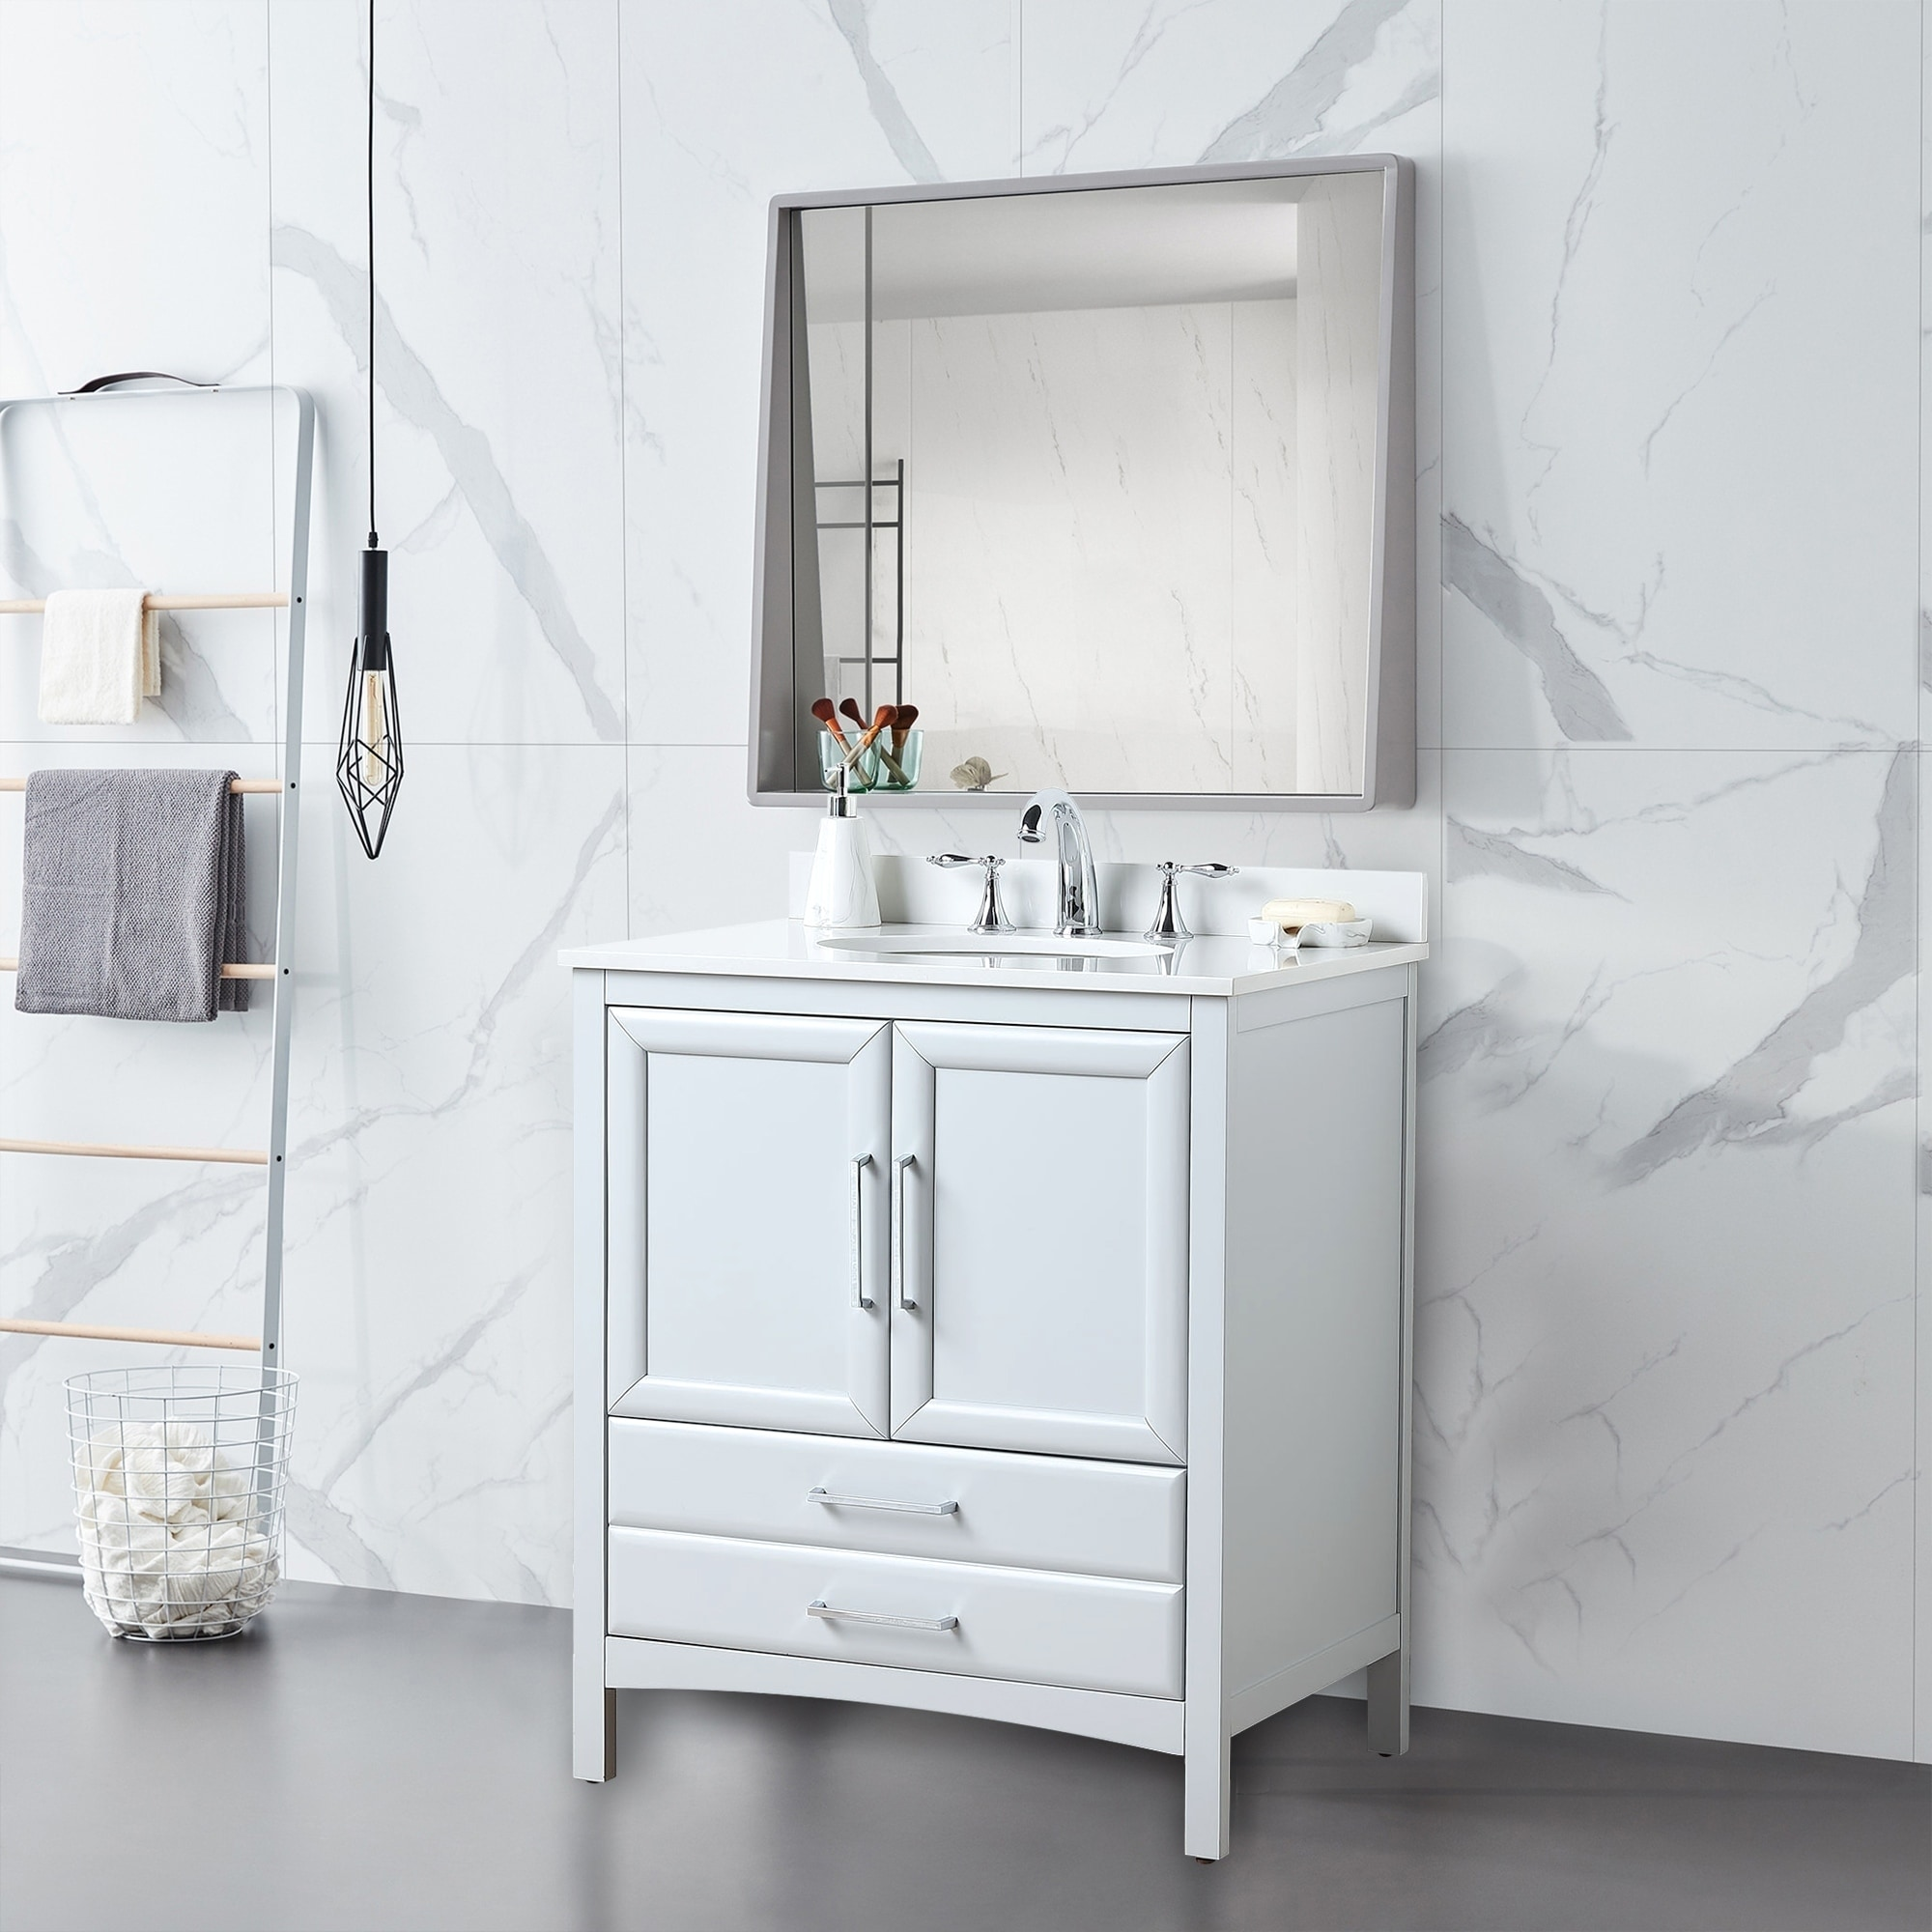 Vanity Art 30 Single Sink Bathroom Vanity Set 1 Shelf 2 Drawers Small Bathroom Storage Floor Cabinet With White Marble Top Overstock 27120209